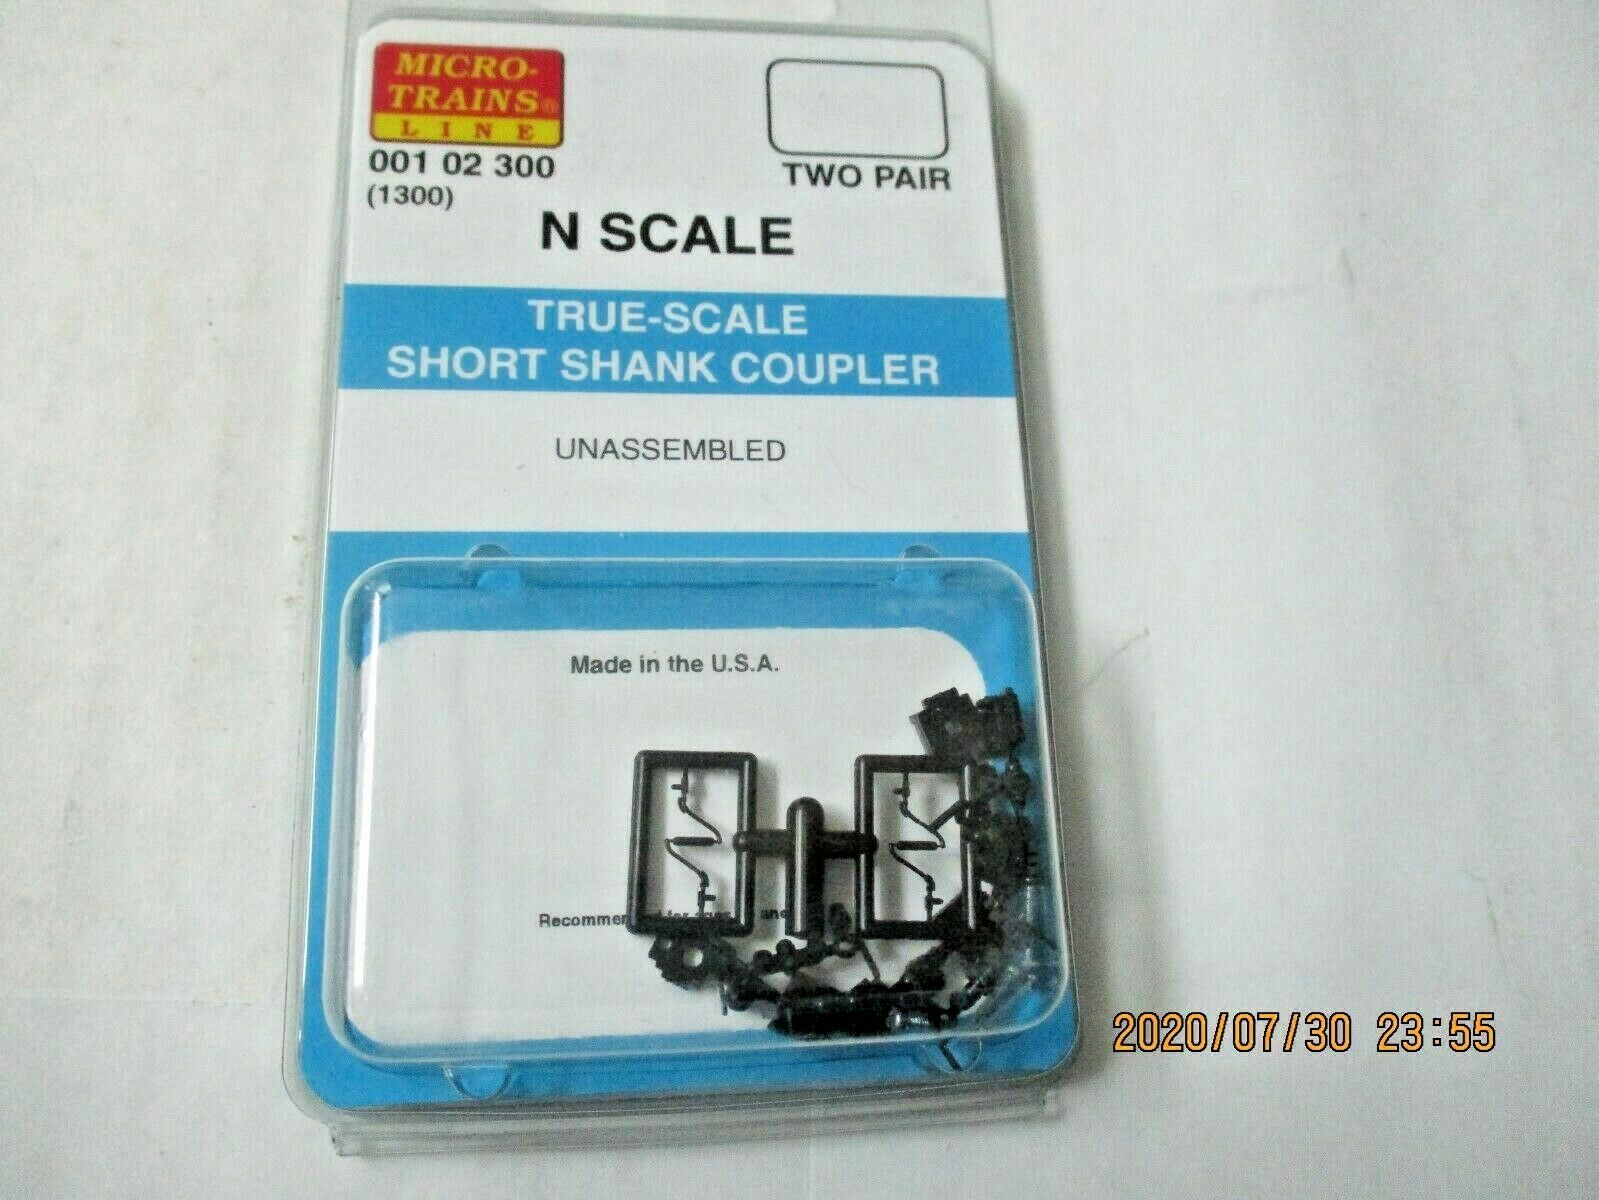 Micro-Trains Stock #00102300 True -Scale Short Shank Coupler  (1300) (N)